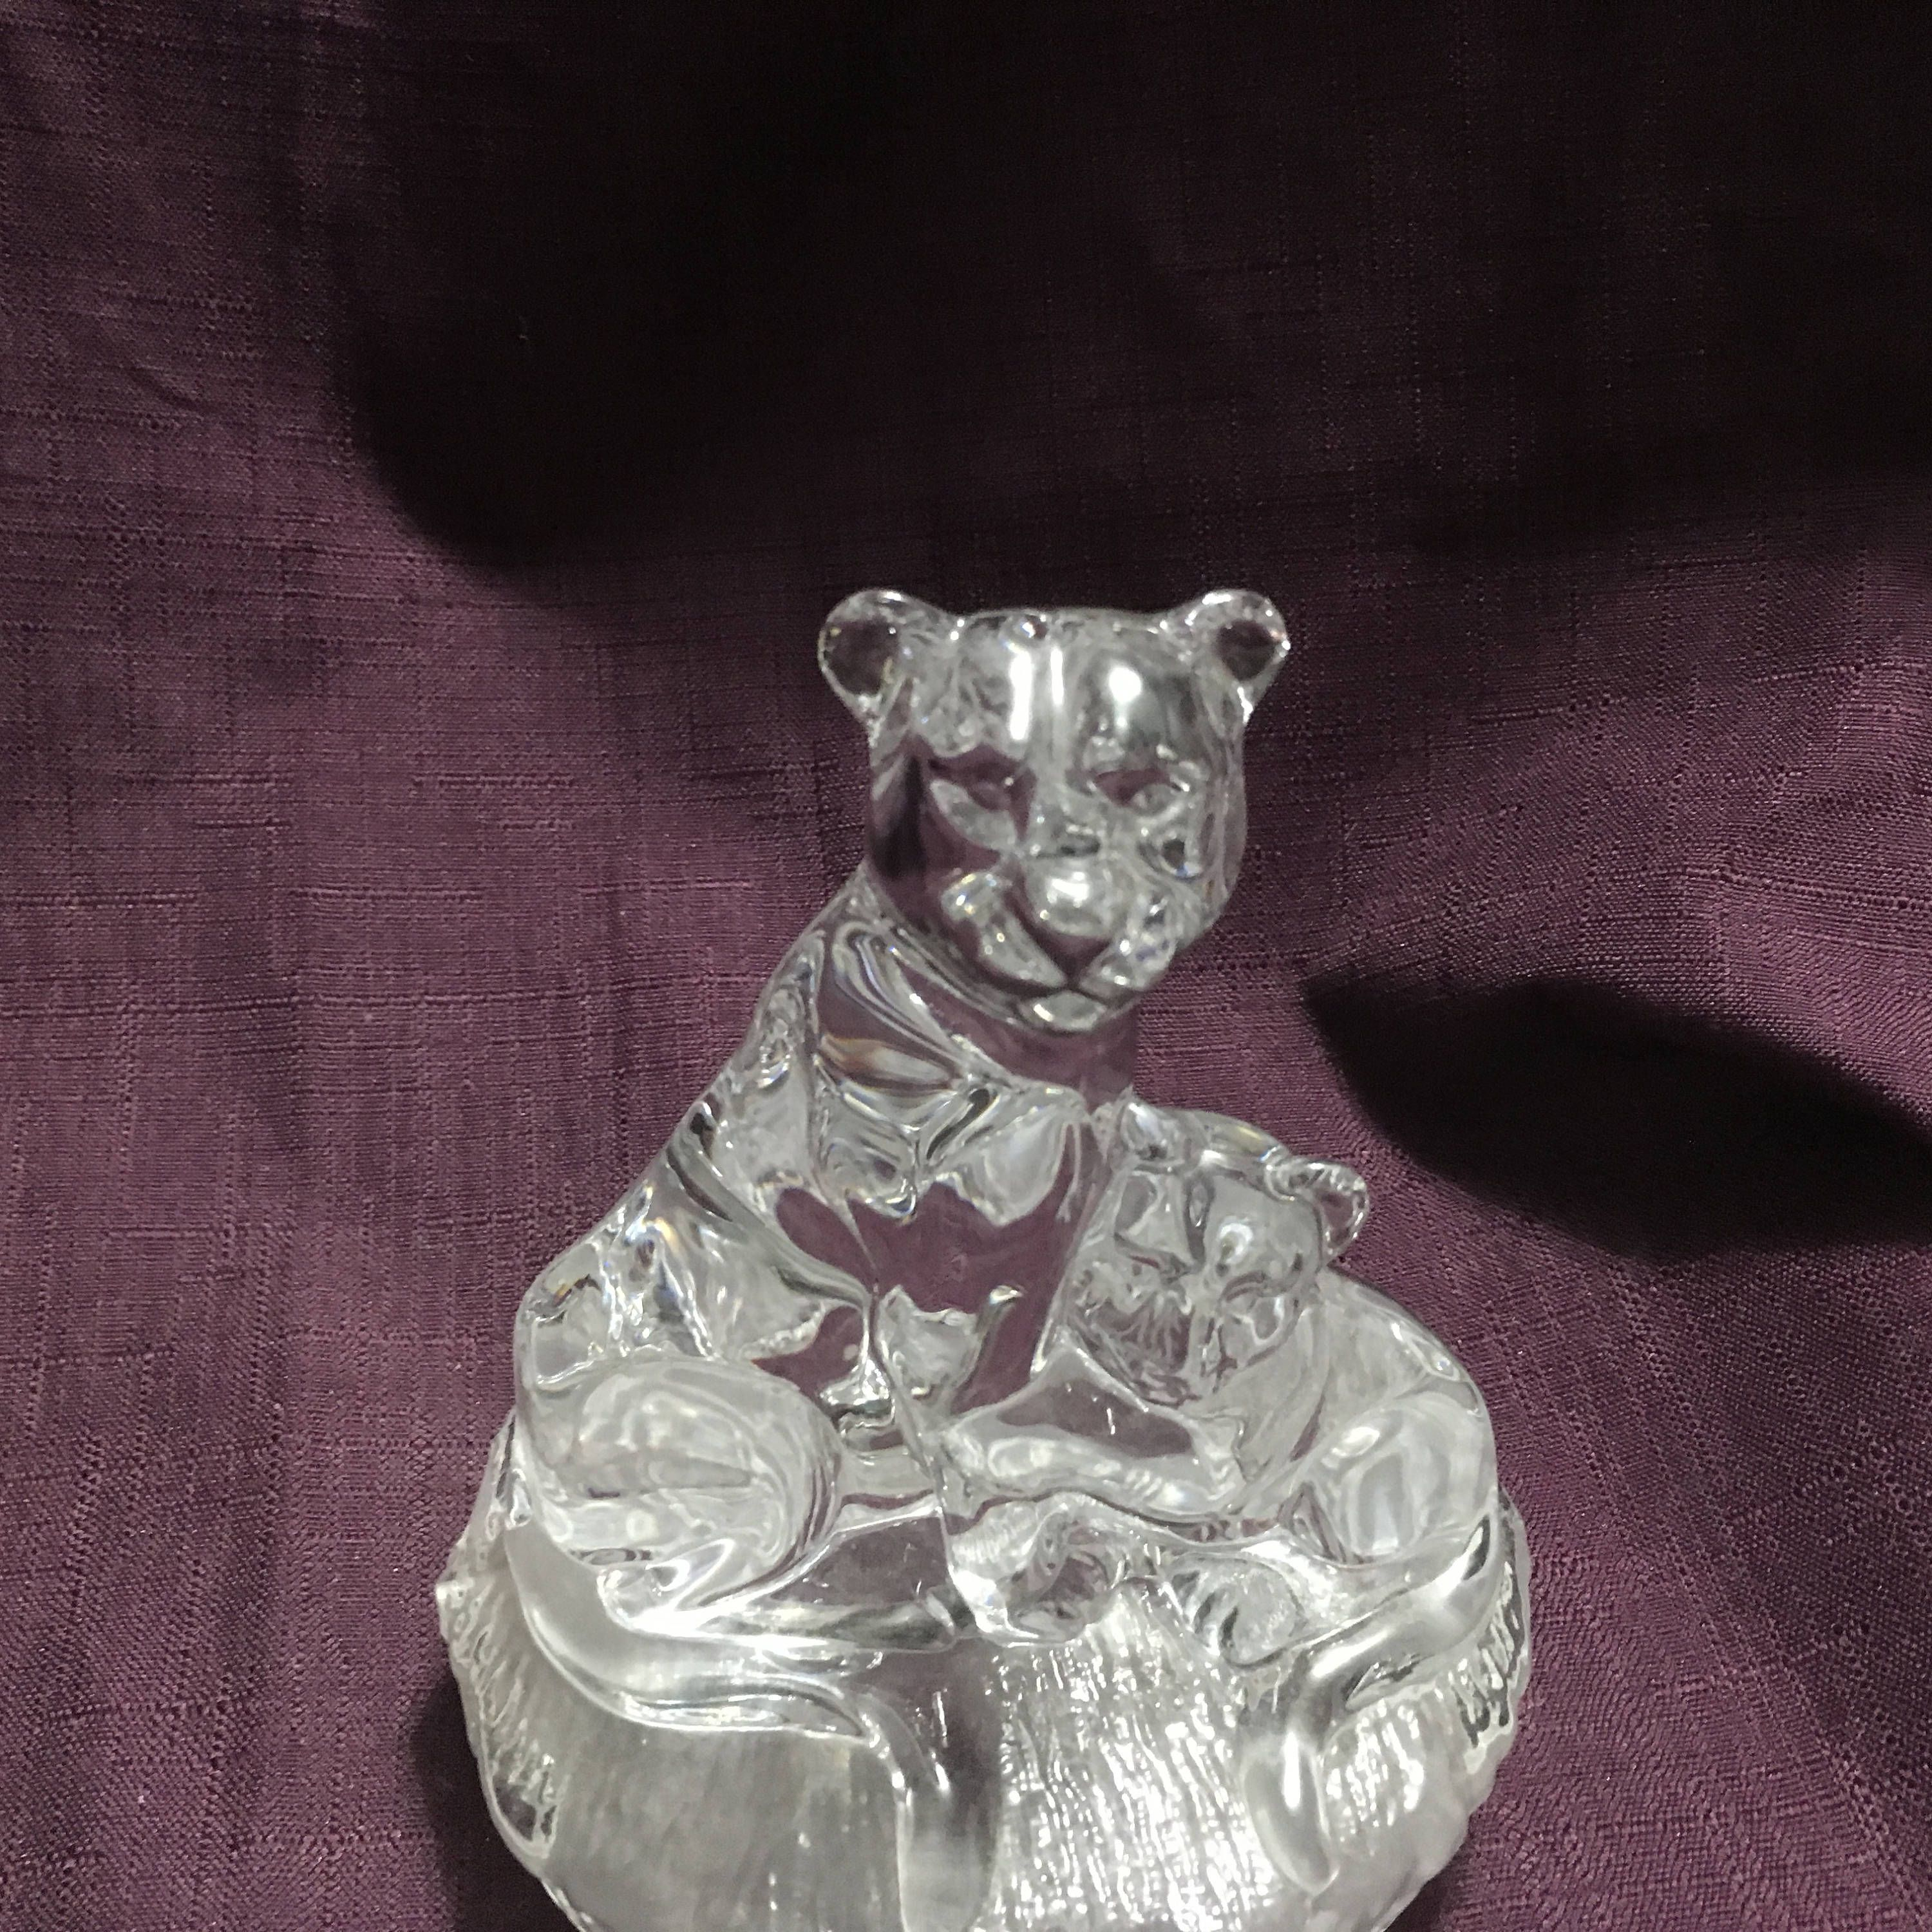 Italian RCR Royal Crystal Rock Lion Cub Sculpture Familes De Cristal Wildlife Italy Gift Idea FREE USA Shipping's on Us @Everything Vintage